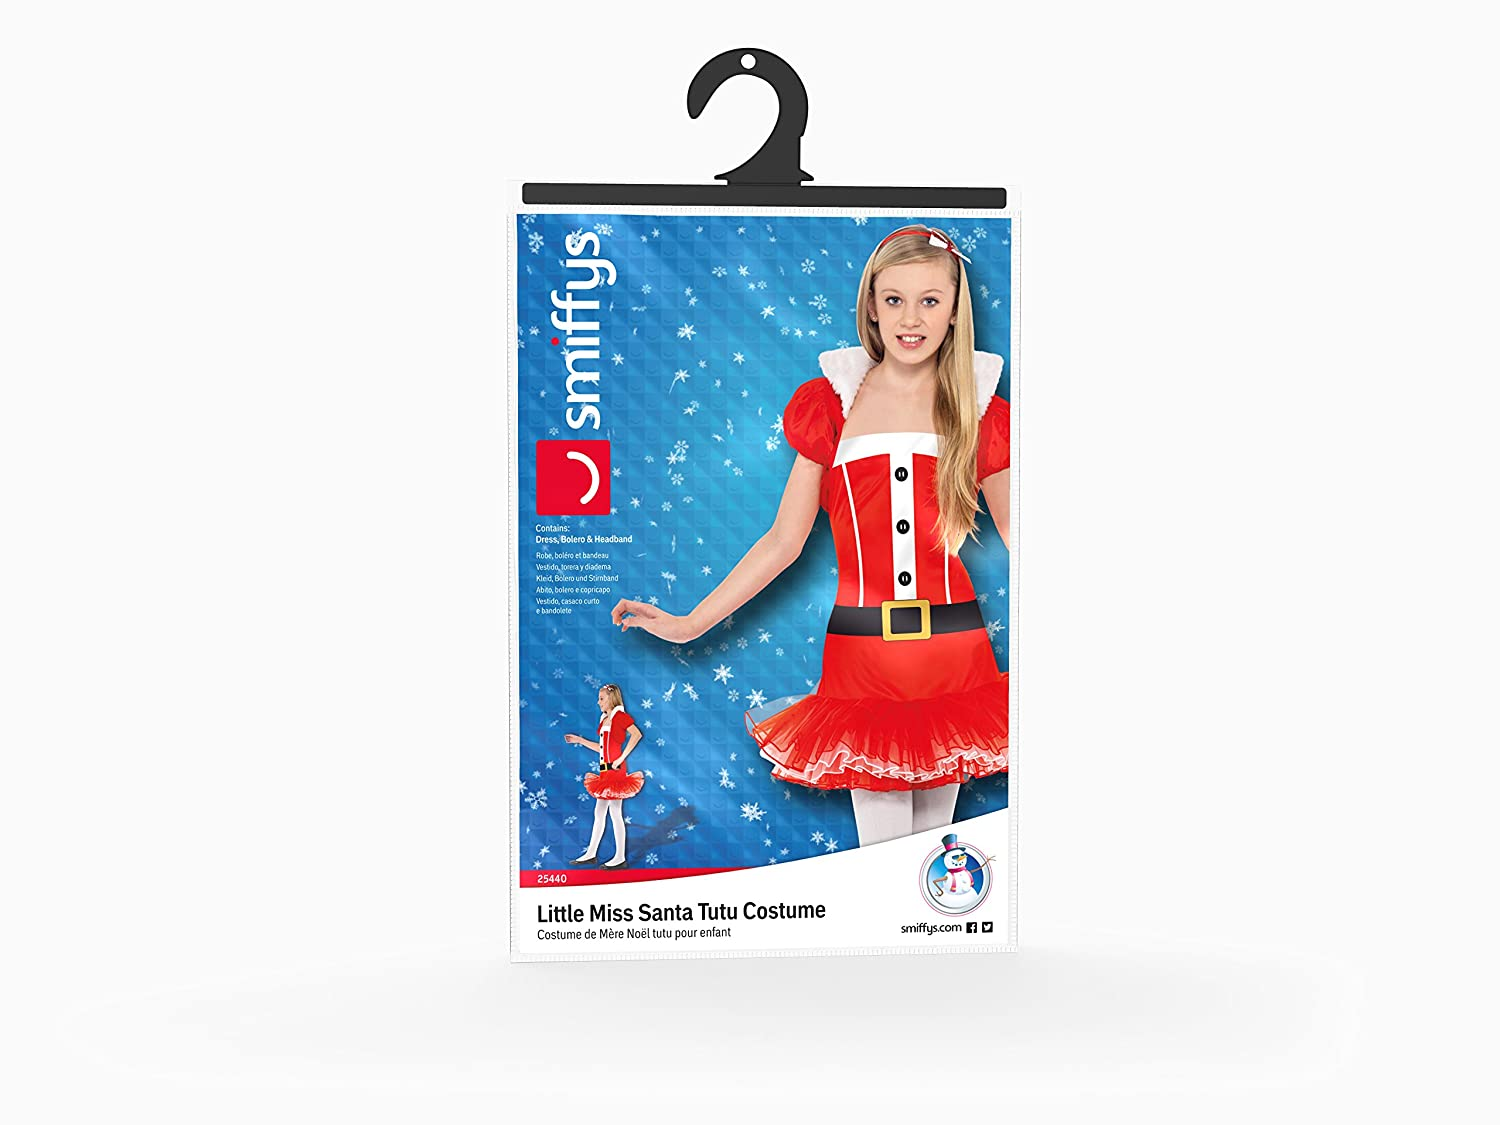 Amazon.com: Christmas Little Miss Santa Tutu Costume - Red, Medium: Clothing